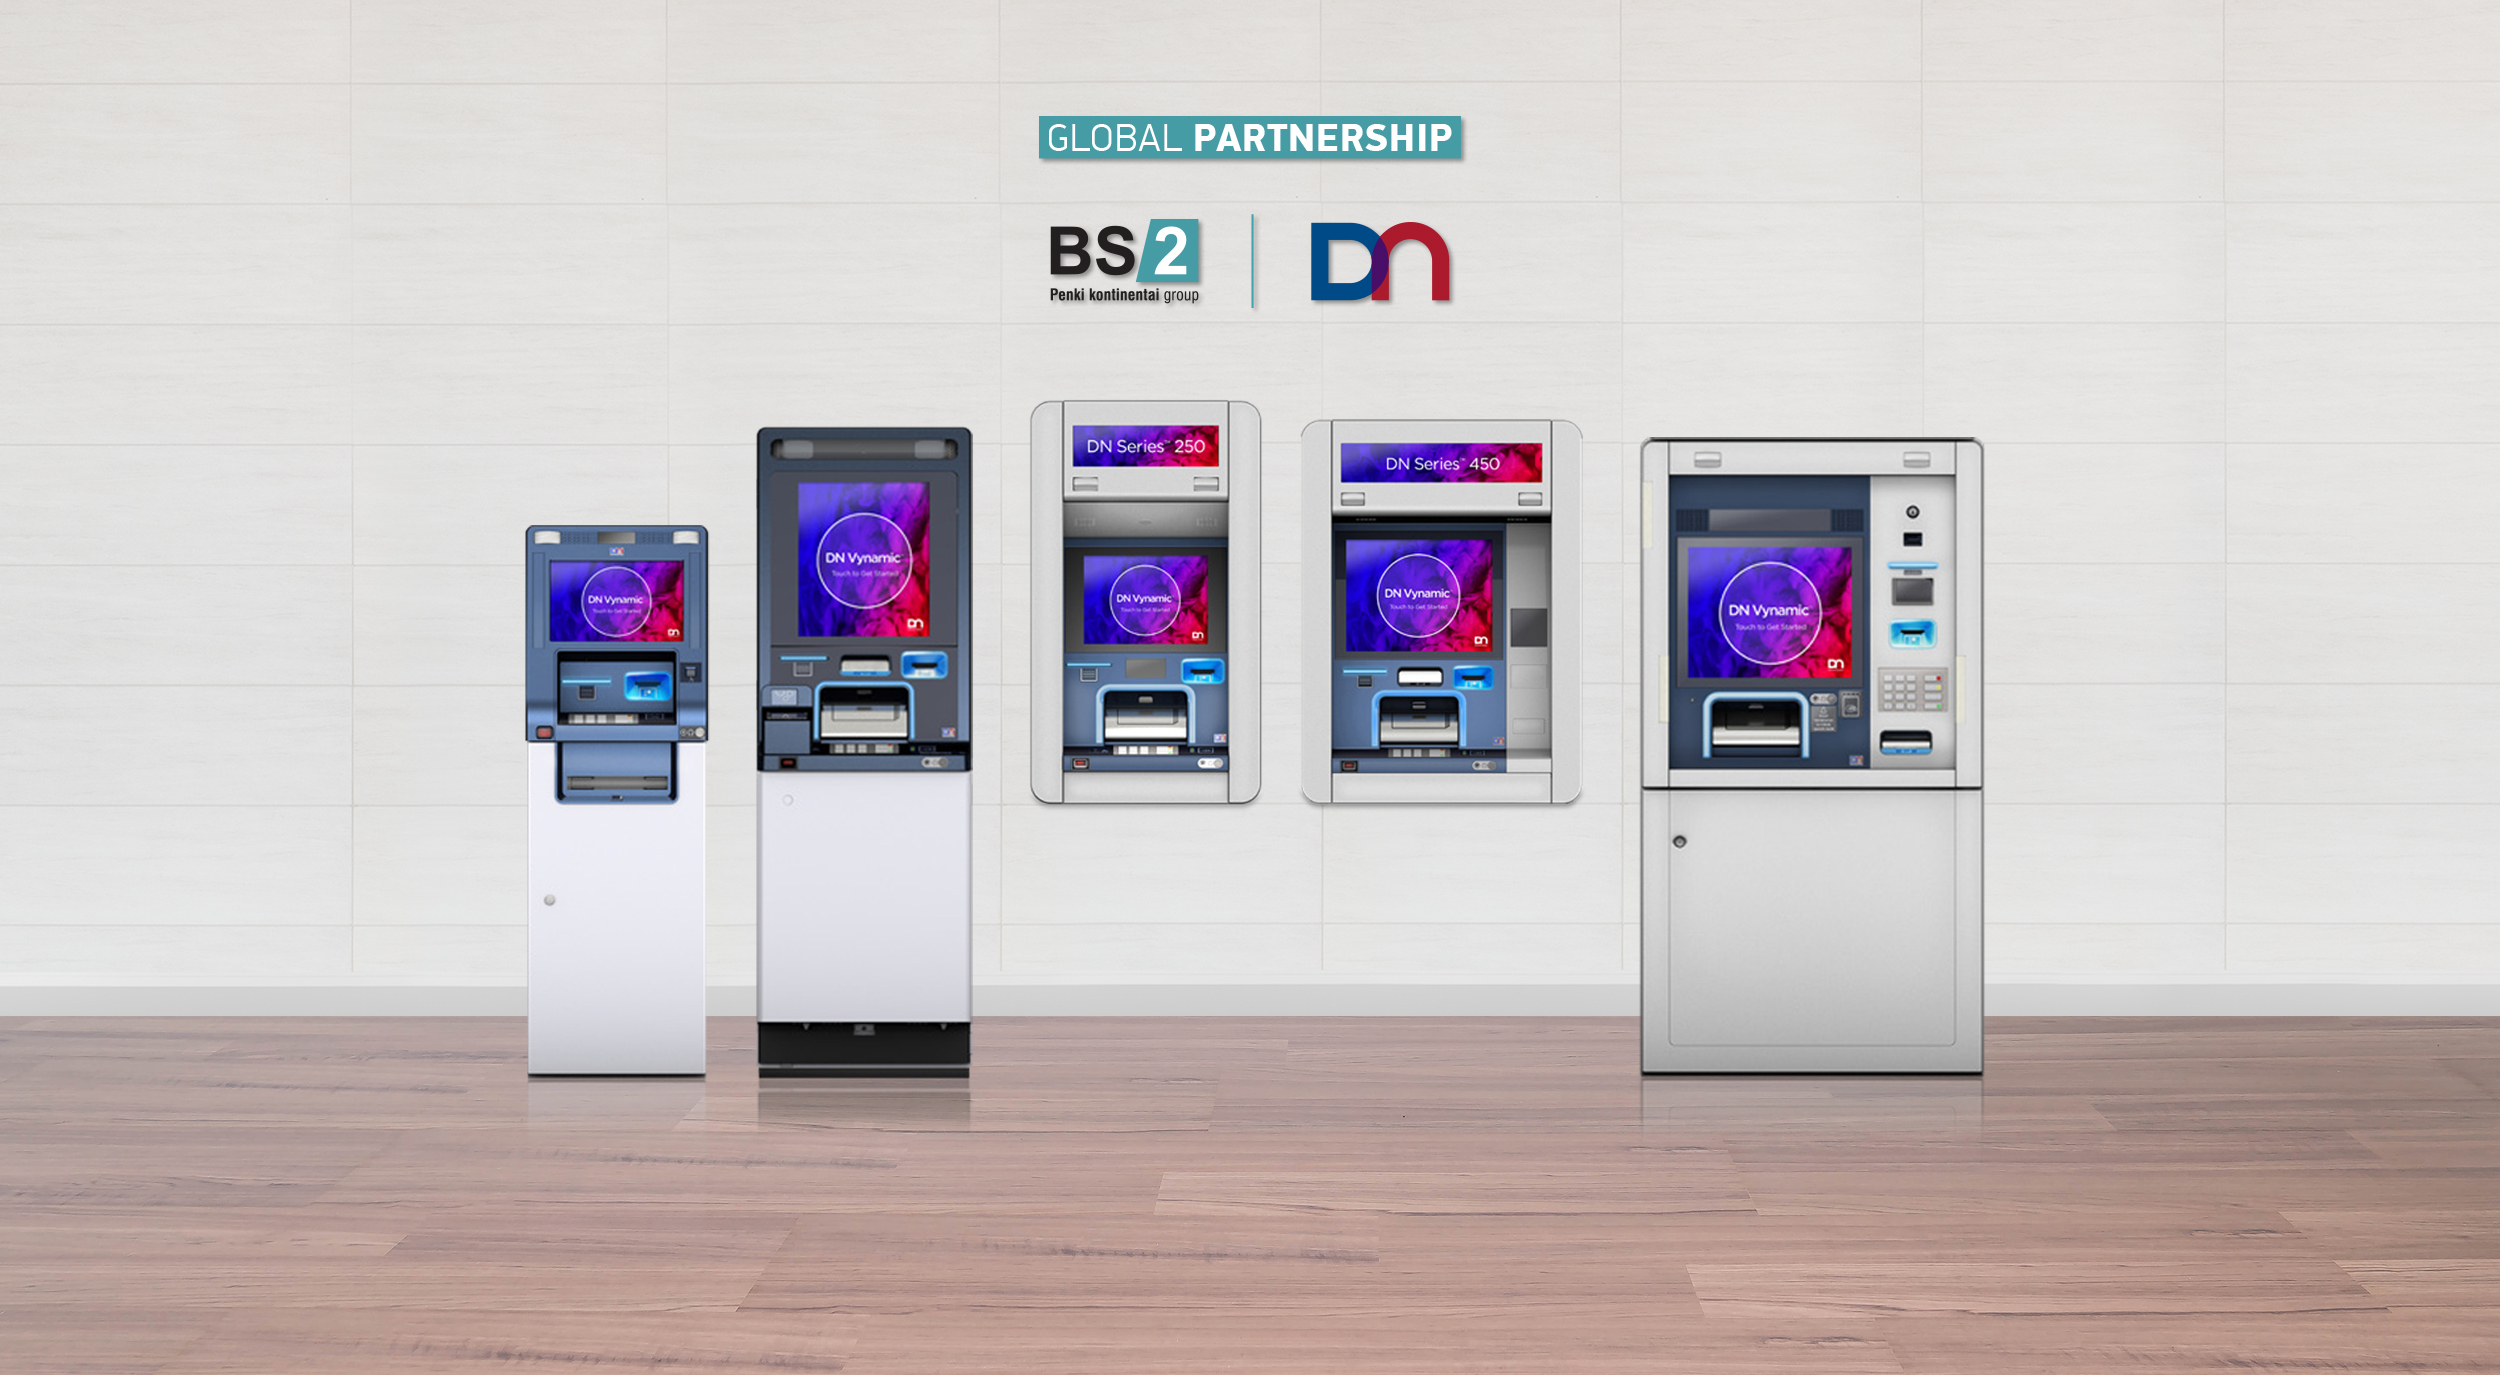 The Revolution From Diebold Nixdorf. A New Line of DN Series ATMs Was Presented